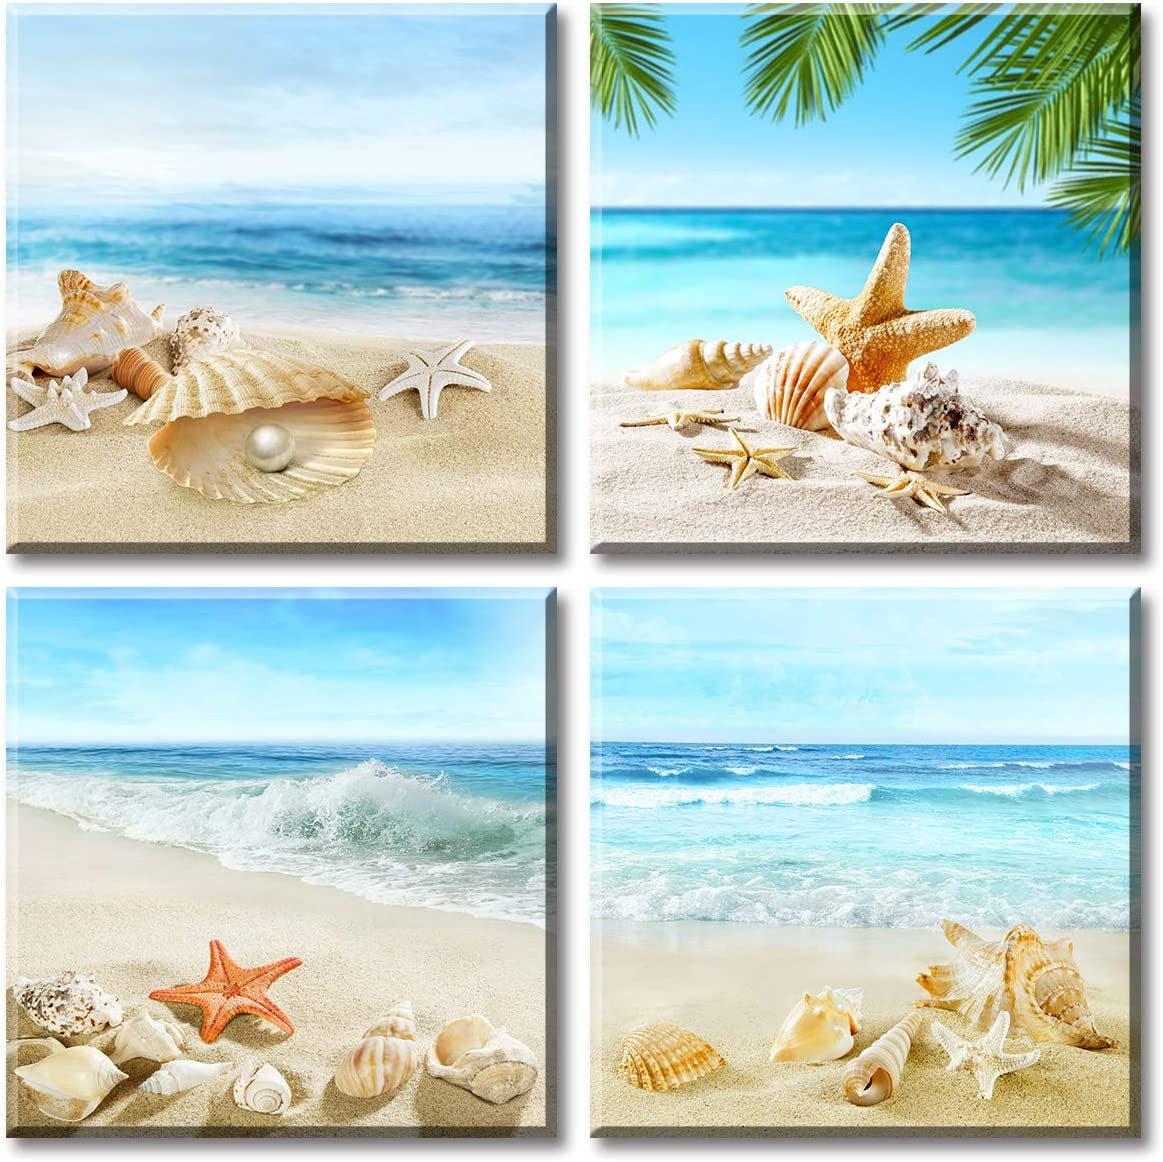 Beach Bathroom Paintings Decor Wall Art Seashell Starfish Nature Canvas Picture Blue Ocean Theme Decorations Posters Contemporary Nautical for Bedroom 12